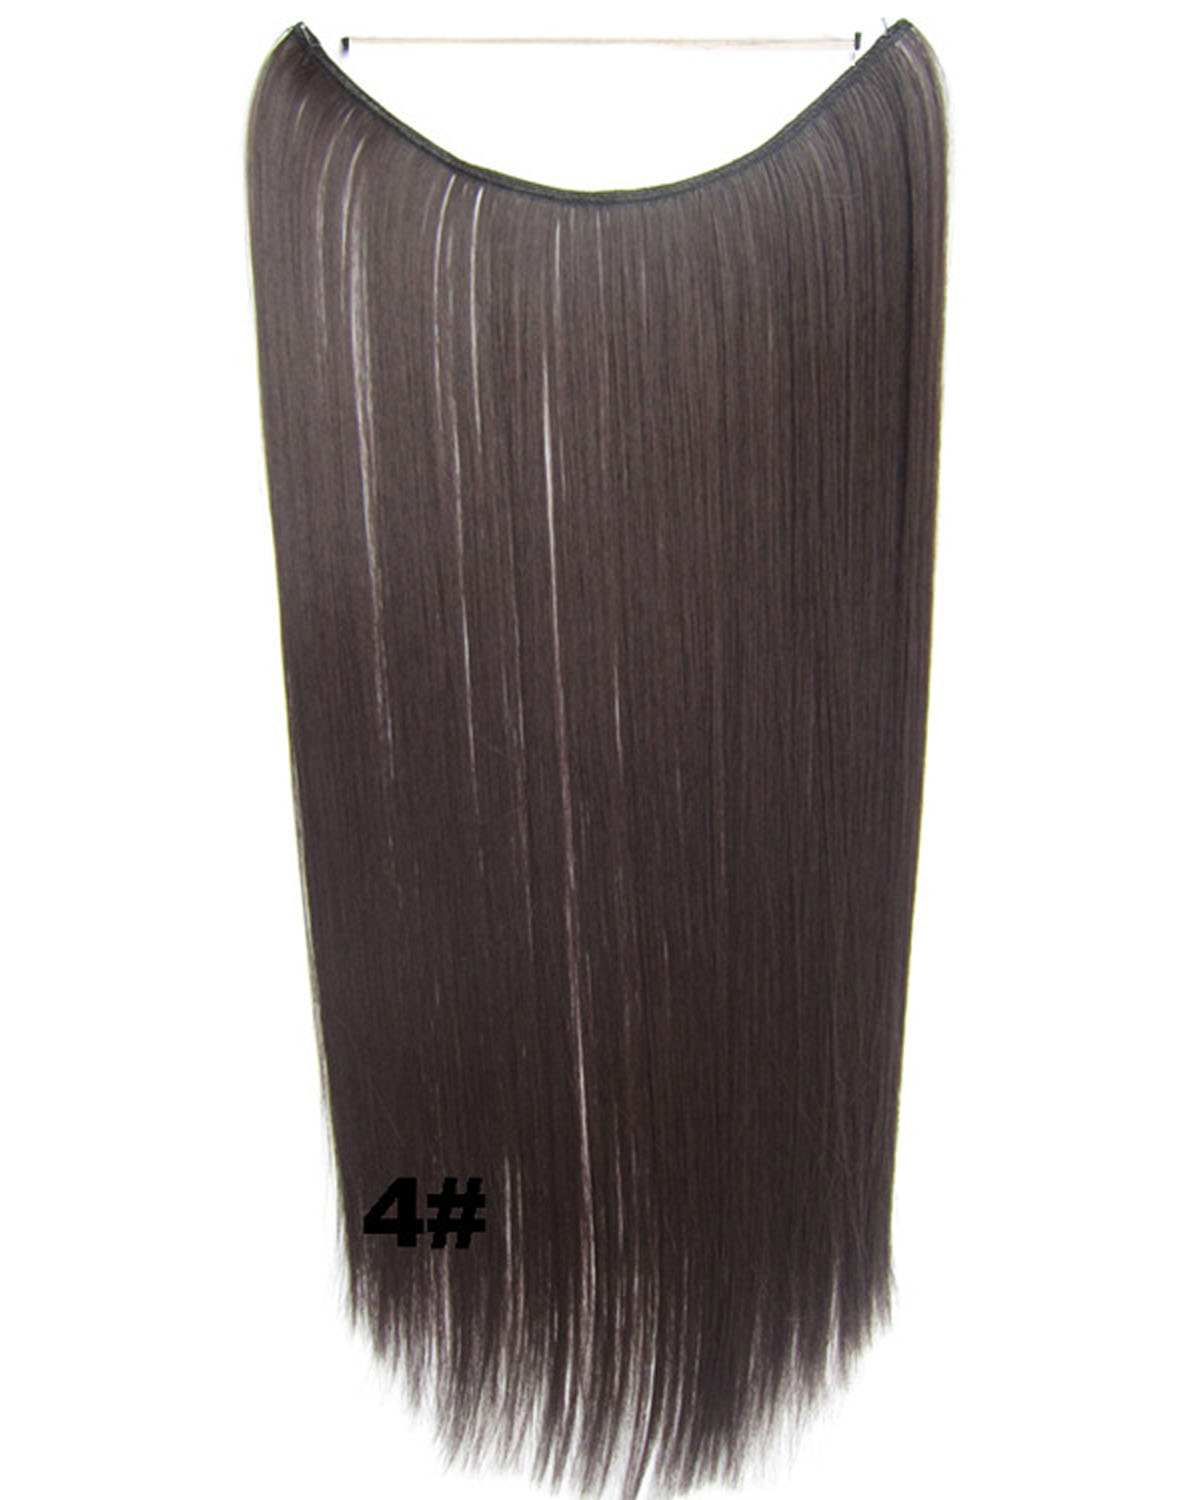 22 Inch Lady Clean Straight long One Piece Miracle Wire Flip in Synthetic Hair Extension 4#